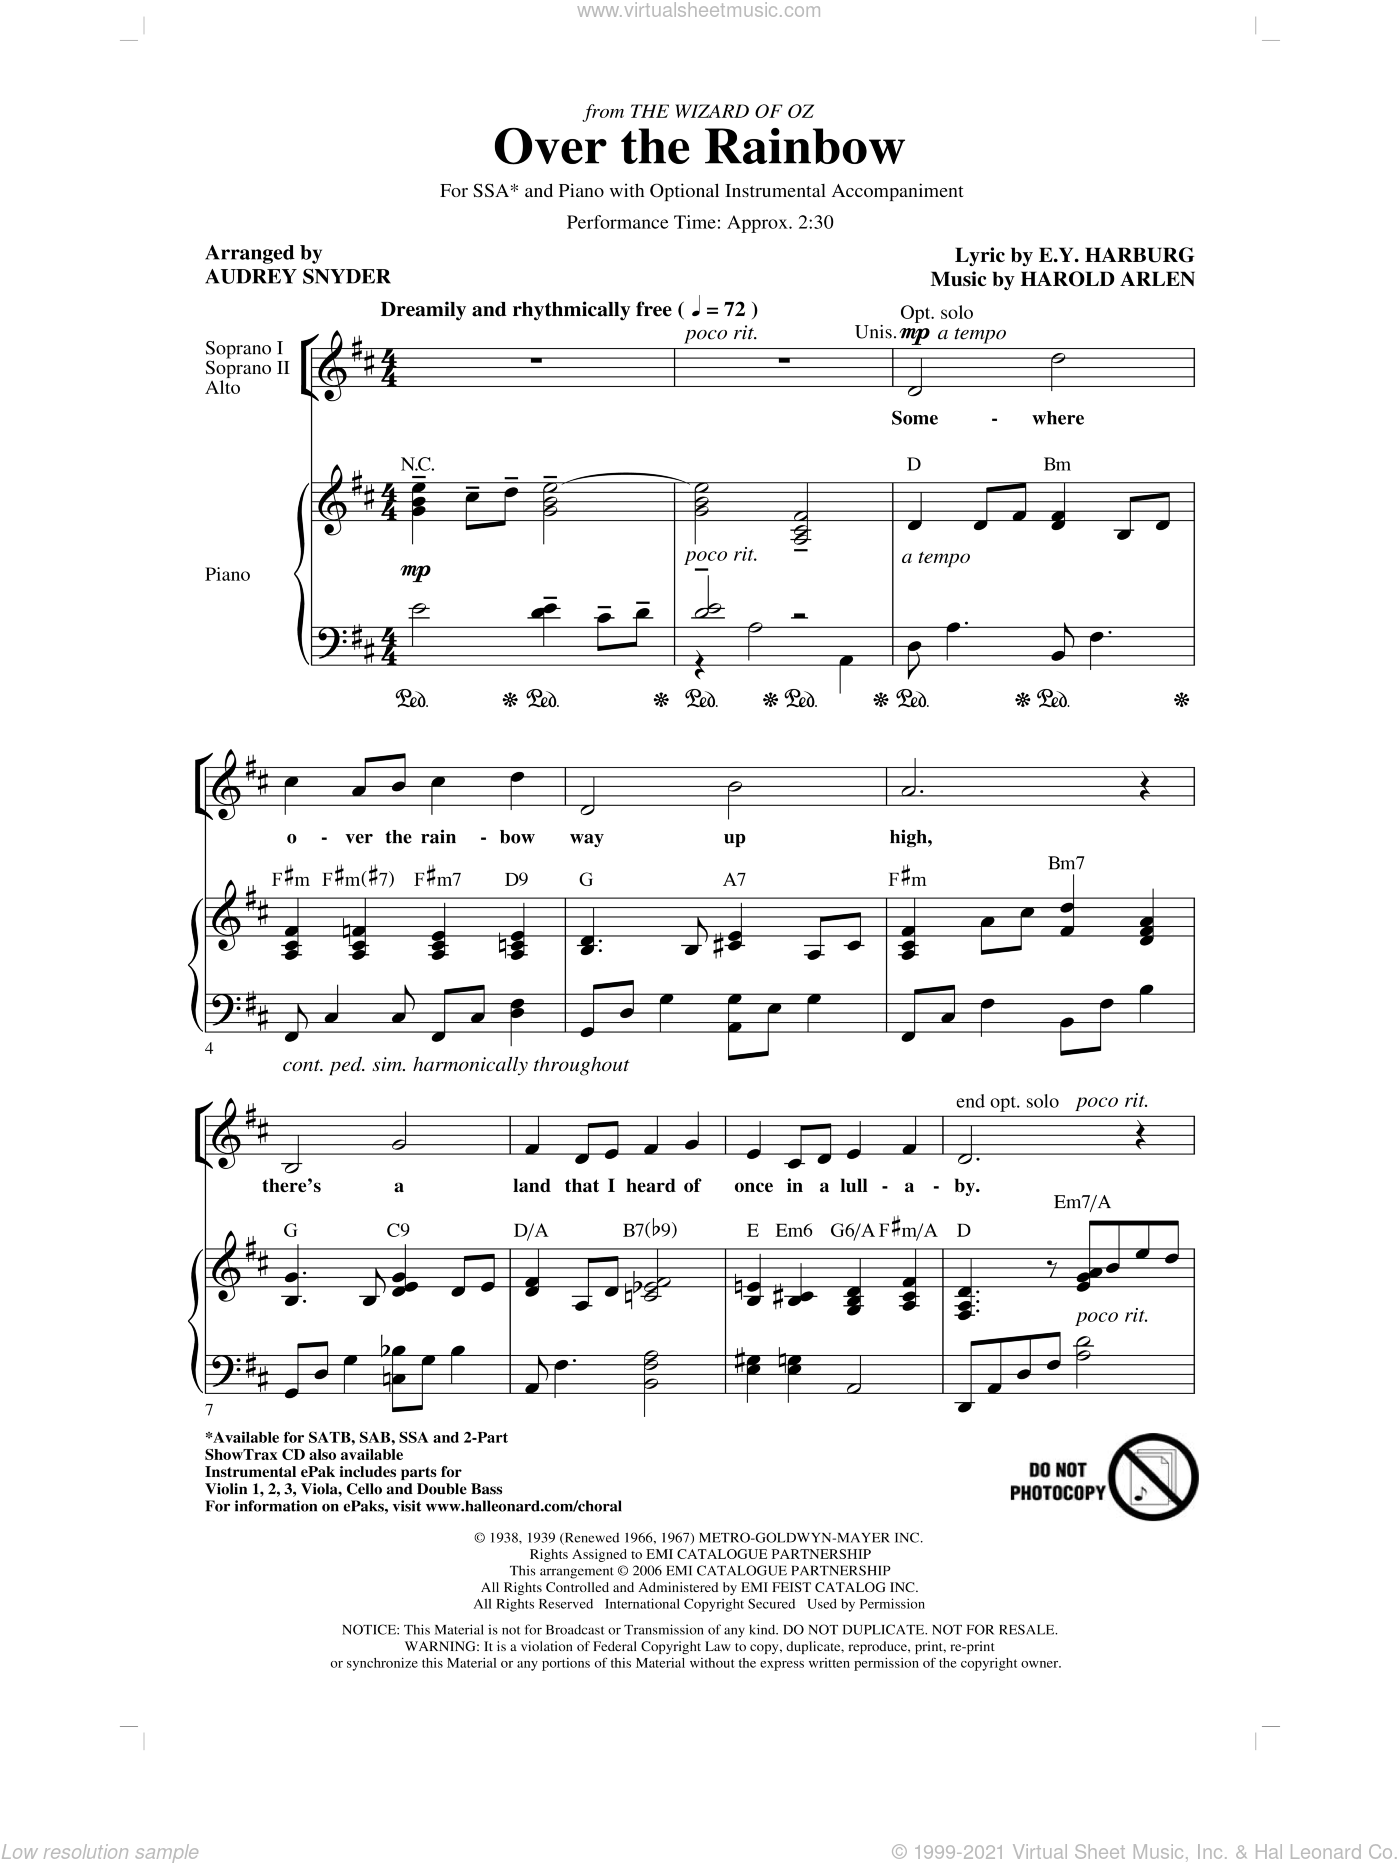 Over The Rainbow sheet music for choir (SSA: soprano, alto) by Harold Arlen, E.Y. Harburg and Audrey Snyder, intermediate skill level